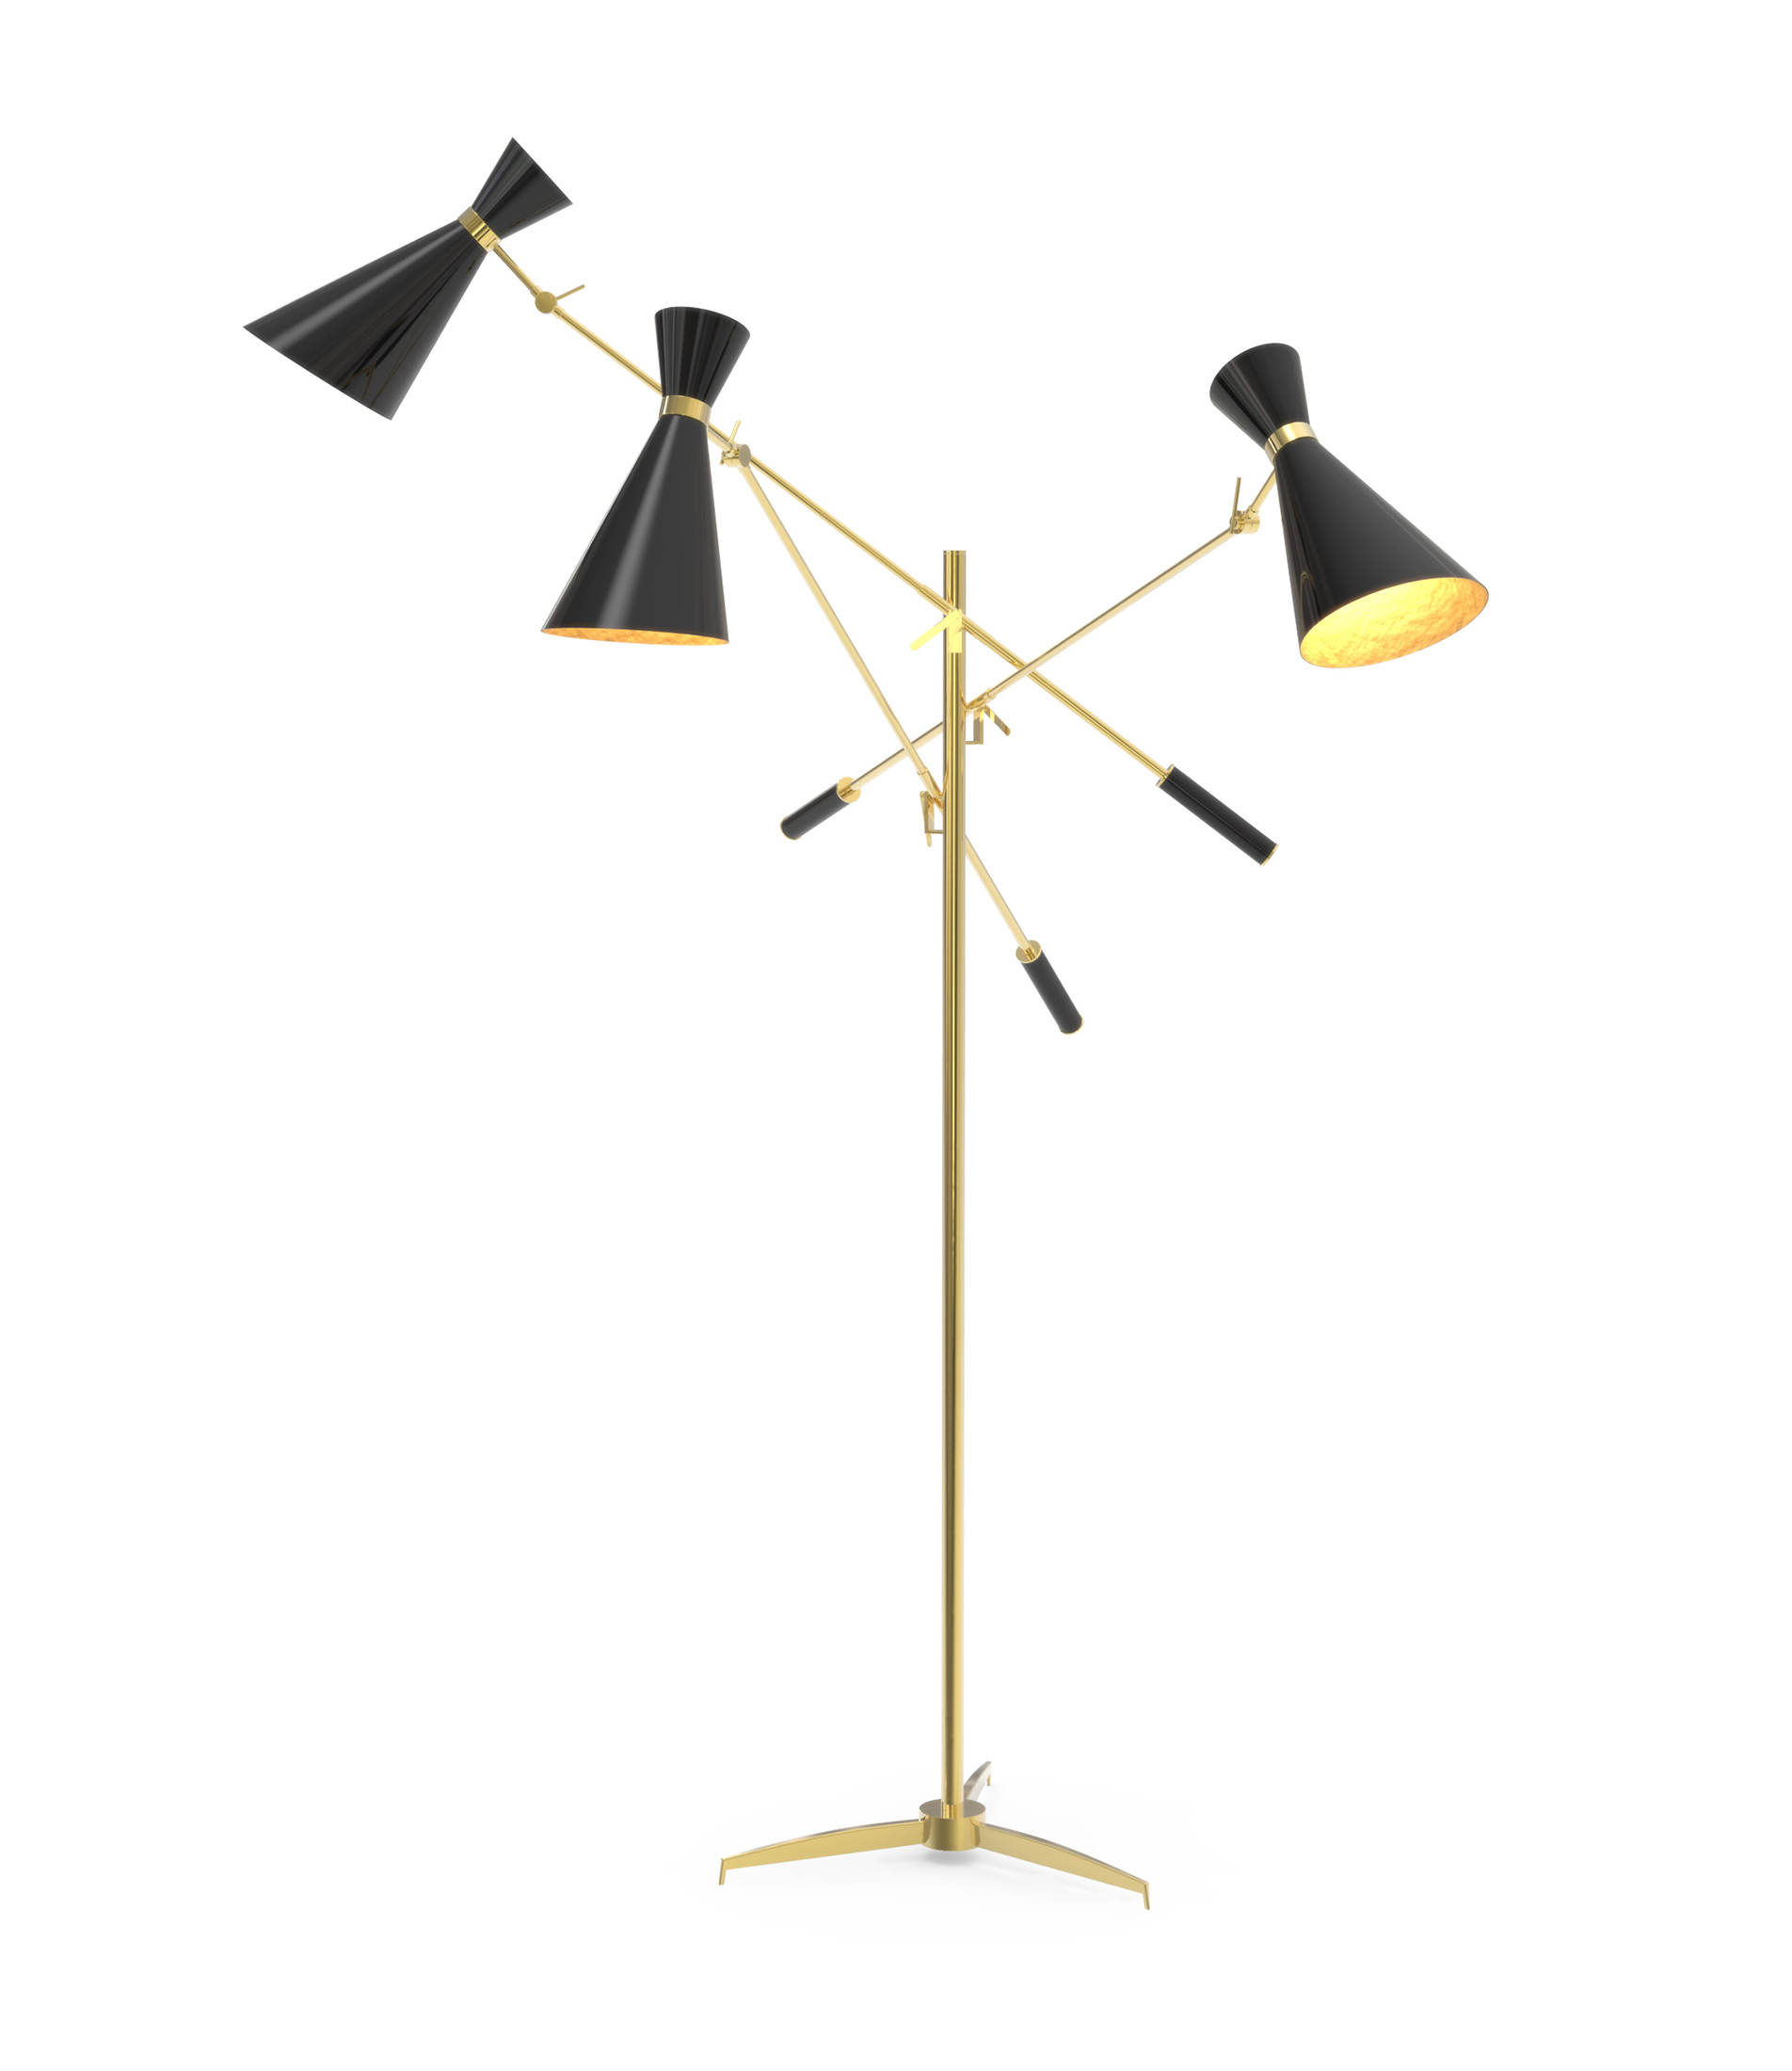 Bright Ideas An Adjustable 3 Light Floor Lamp That You'll Love 3 light floor lamp Bright Ideas: An Adjustable 3 Light Floor Lamp That You'll Love Bright Ideas An Adjustable 3 Light Floor Lamp That You   ll Love 1